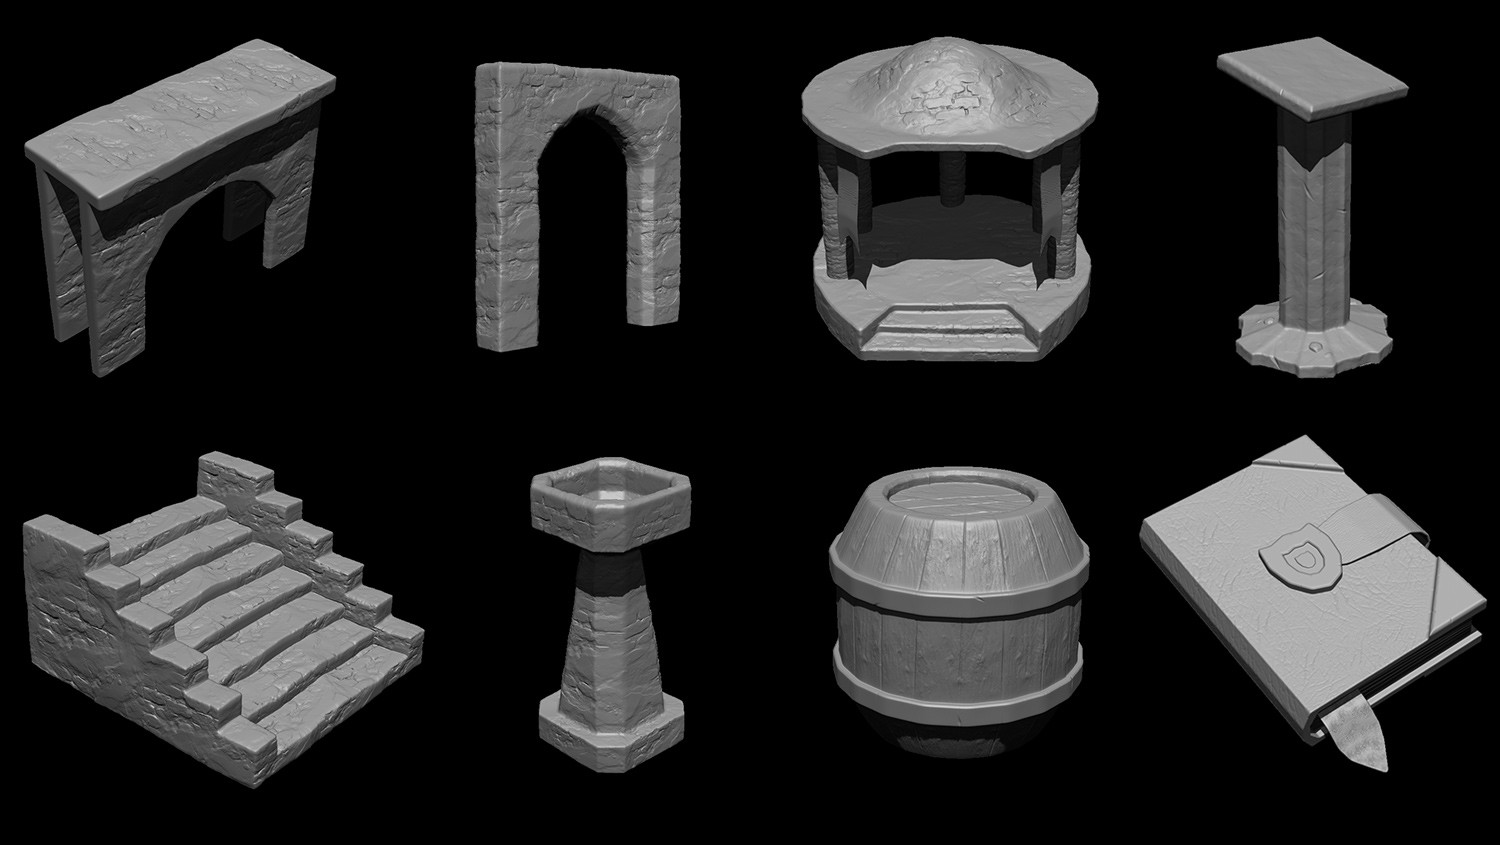 Some highpoly models from ZBrush